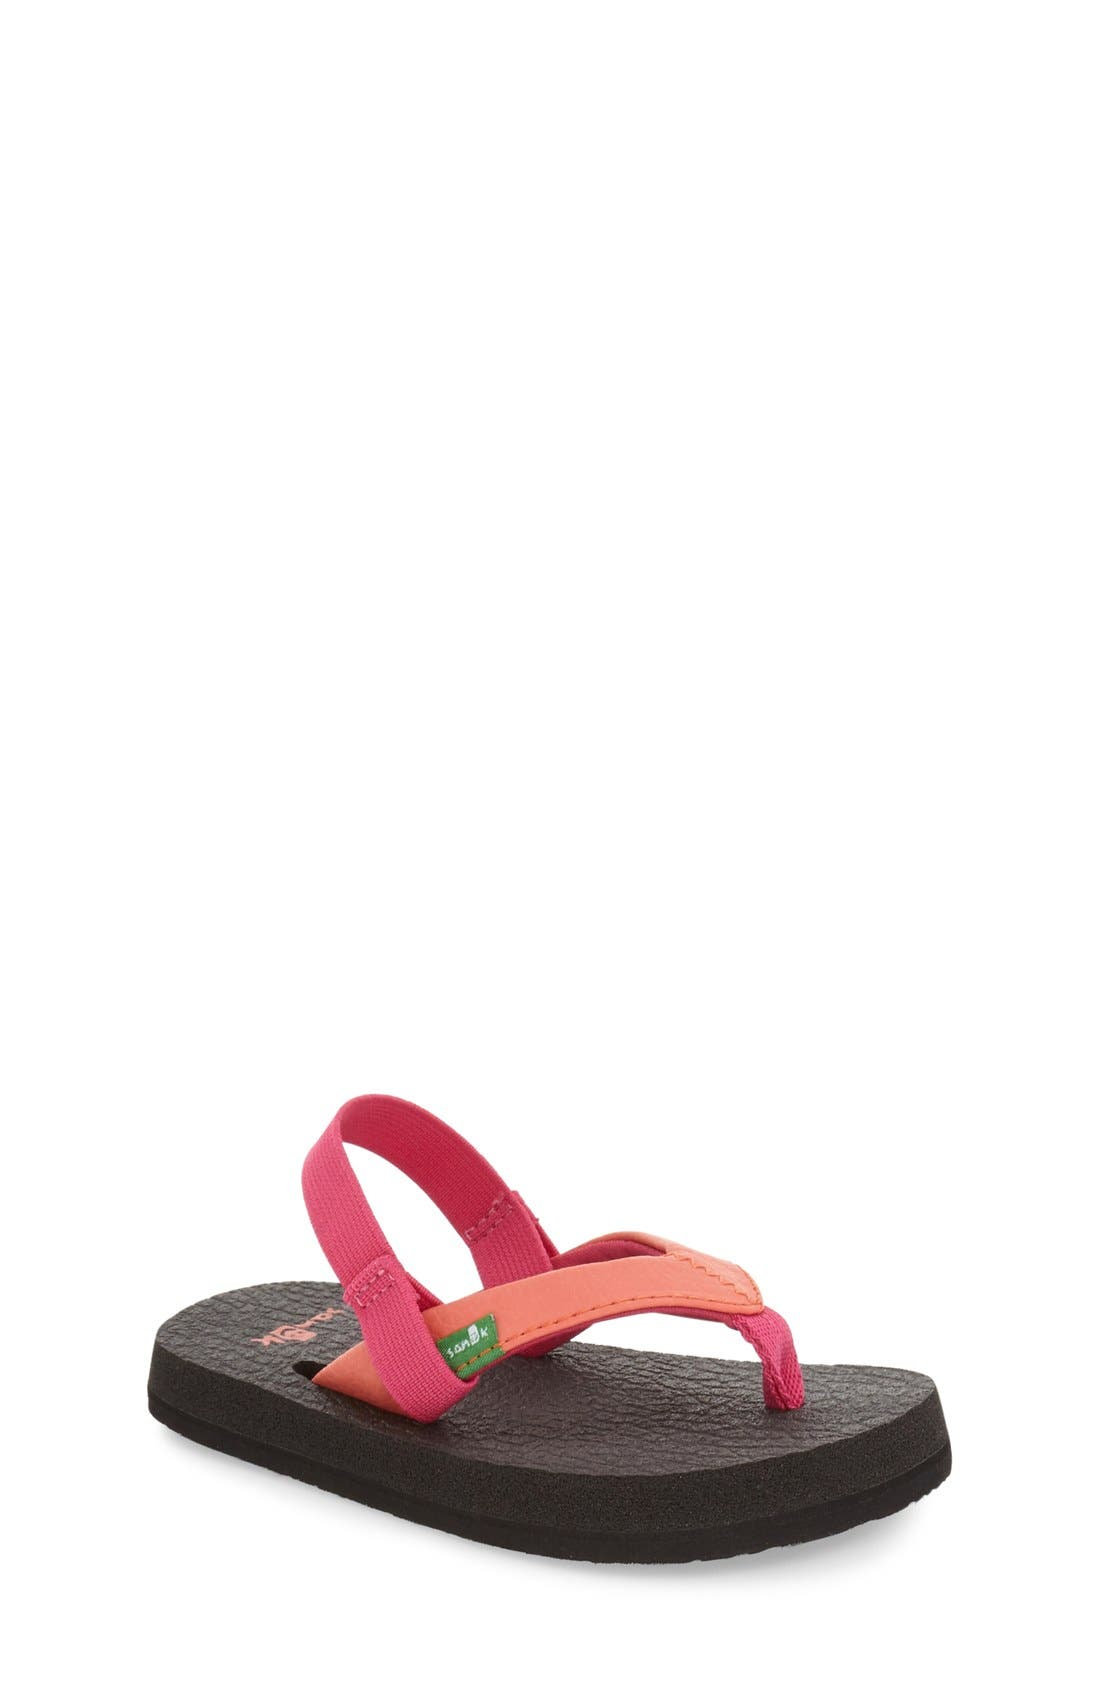 'Yoga Mat' Sandal,                         Main,                         color, 833